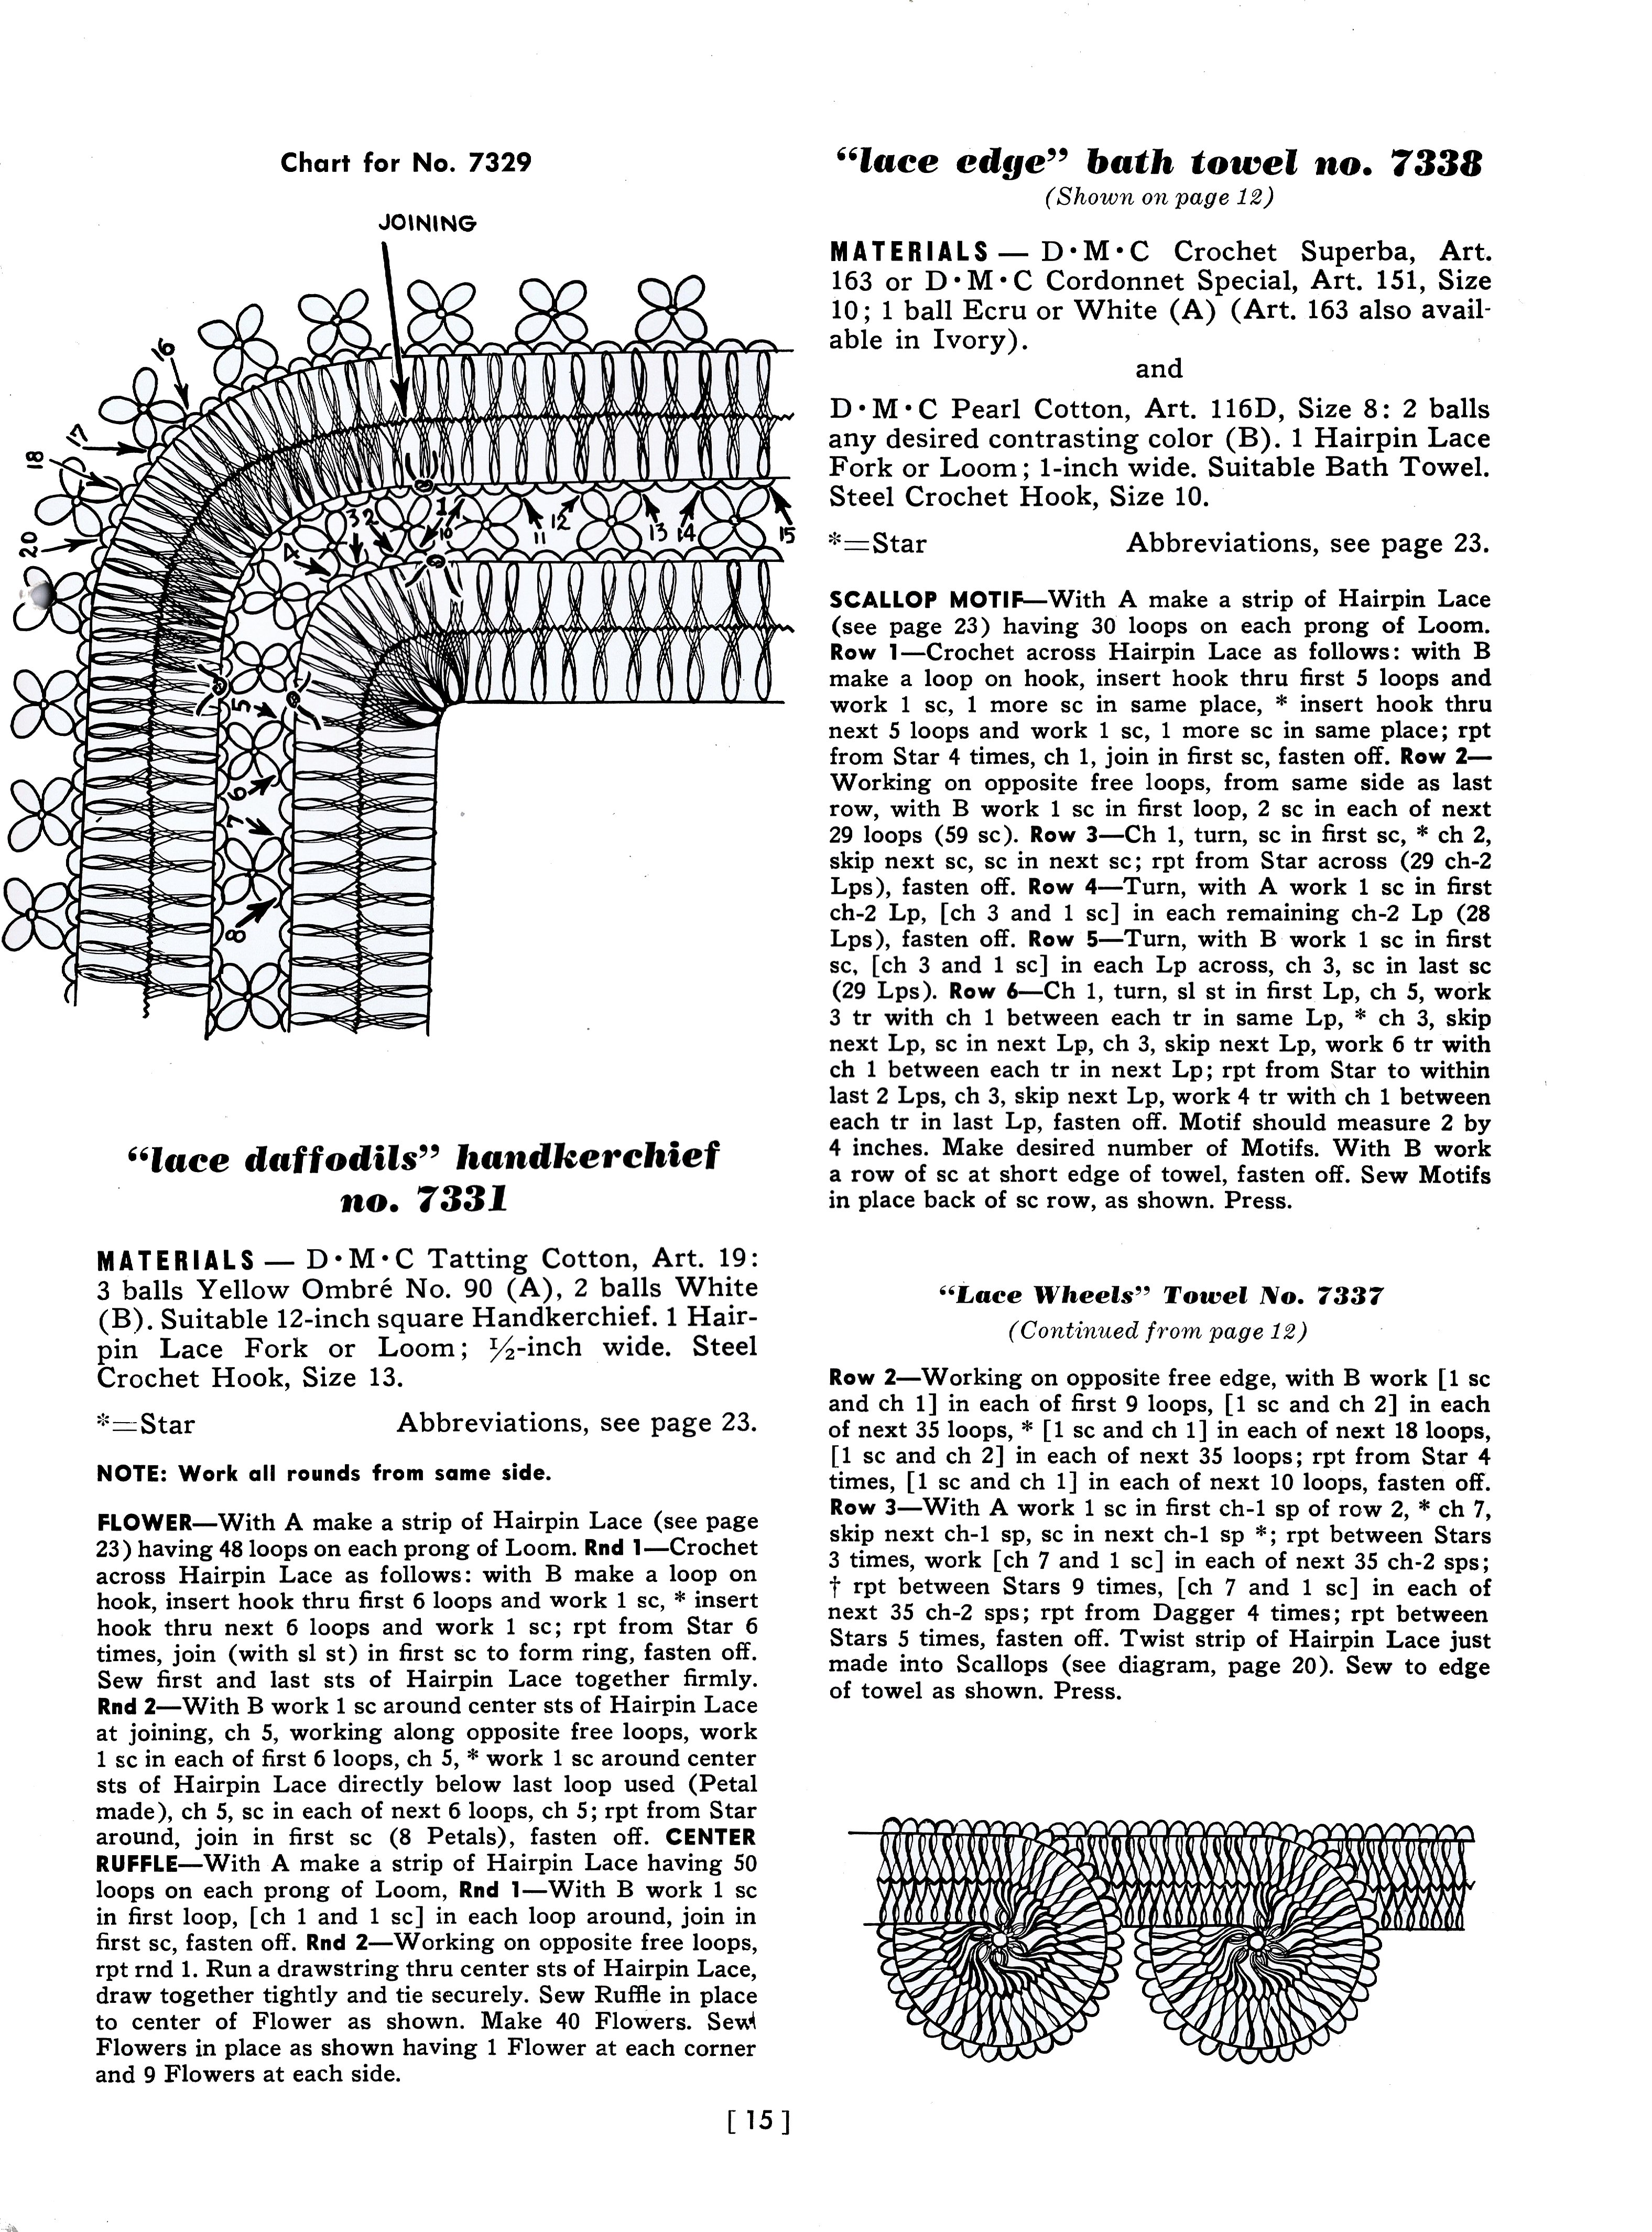 Learn how to write crochet patterns dancox for learn how to create hairpin maltese lace crochet patterns bankloansurffo Image collections